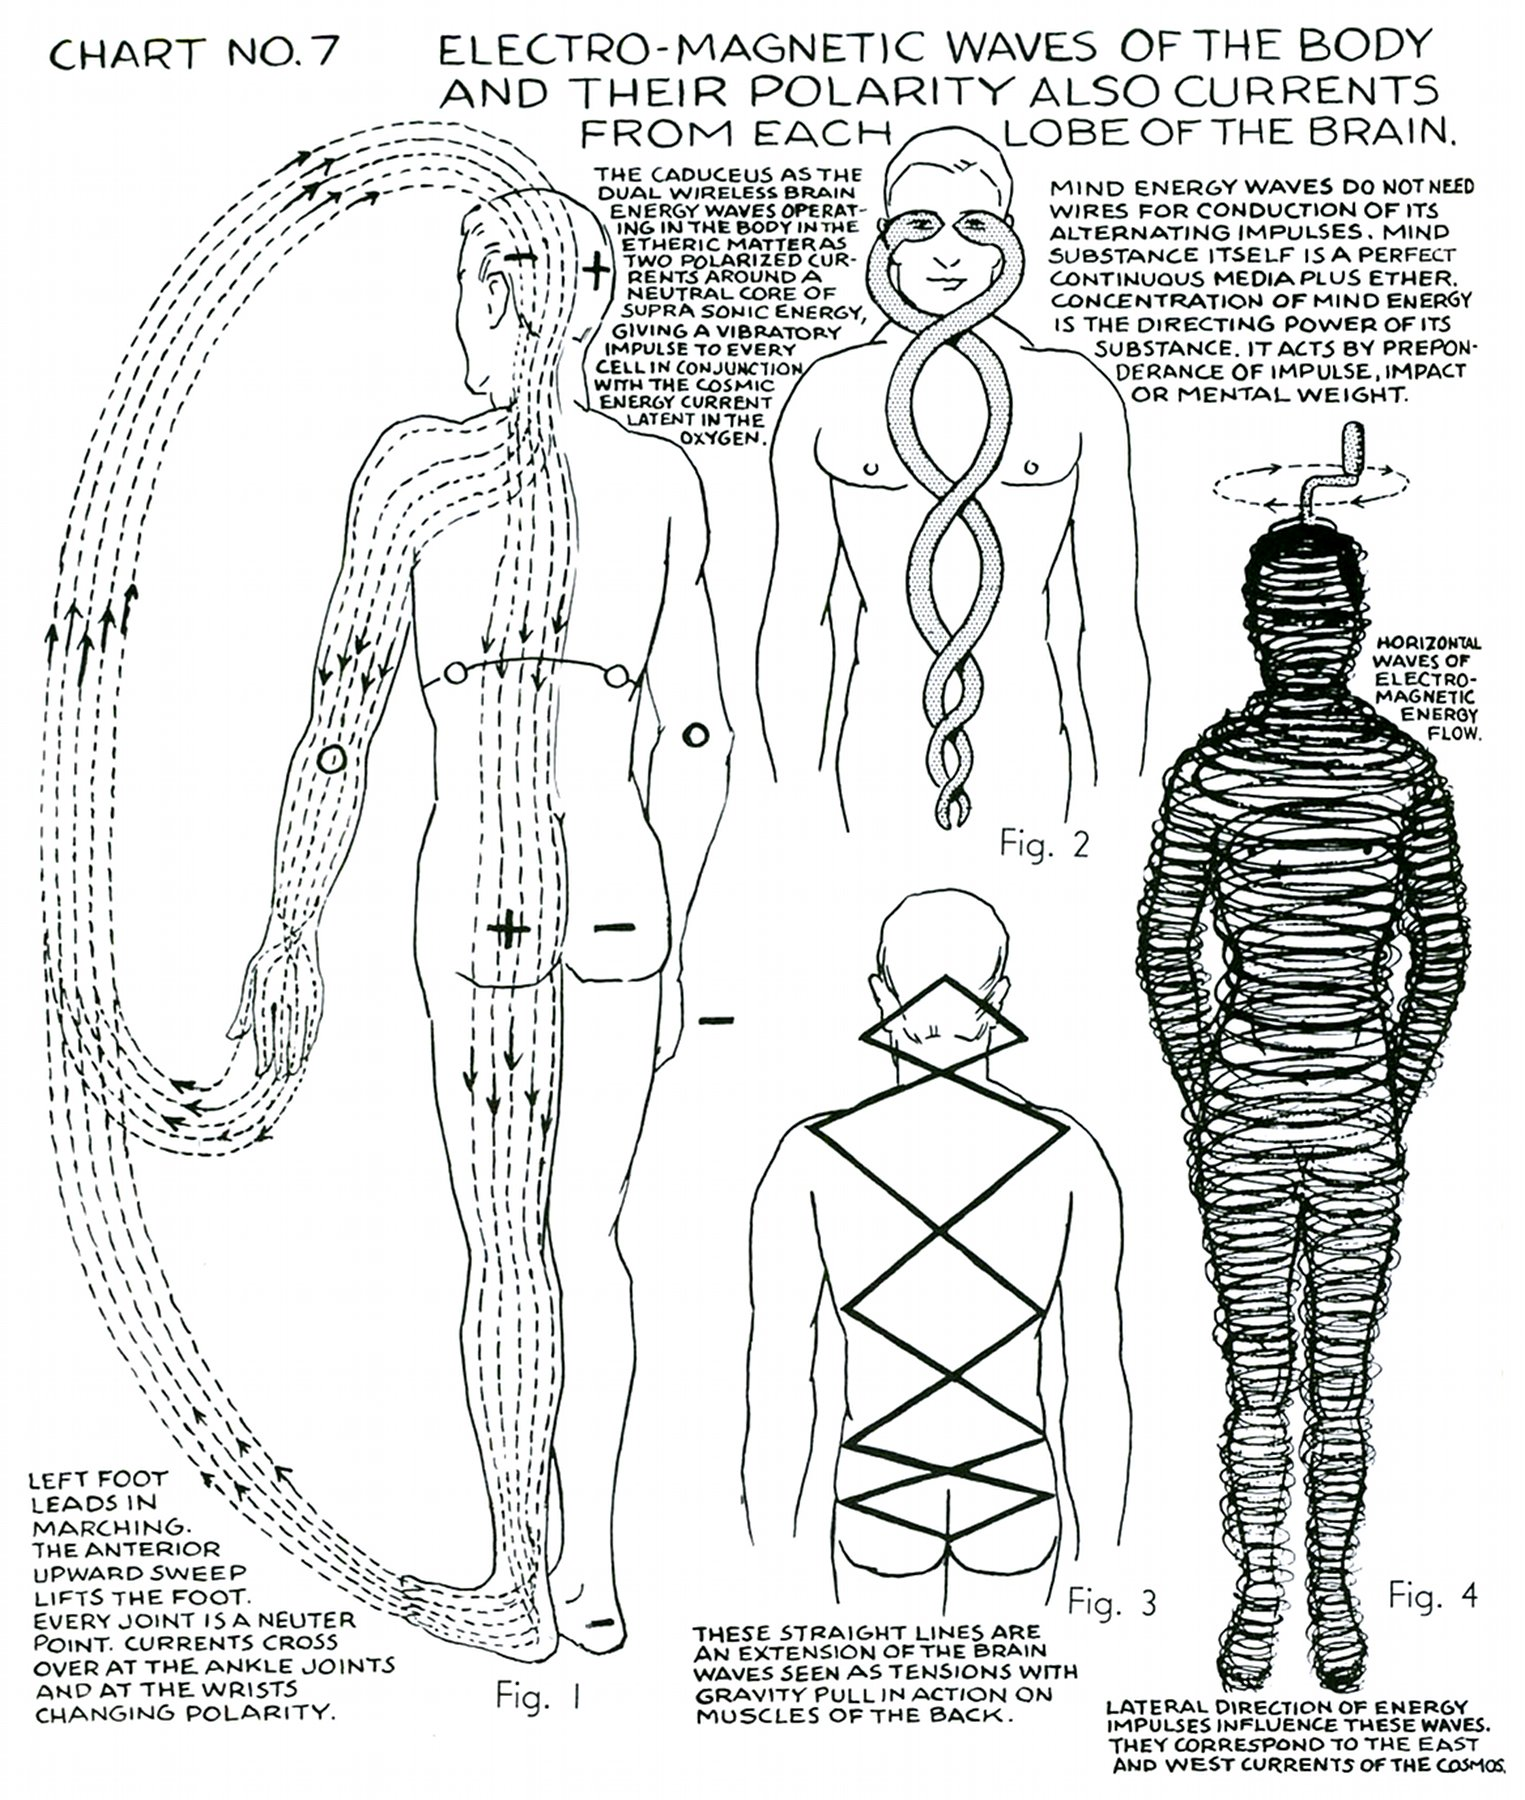 Plank Shoulder Taps besides Stock Illustration Exercising Neck Bridge Prone Bodybuilding Target Muscles Marked Red Initial Final Steps Image66857047 in addition Hulk Coloring Pages in addition Vertical Body Shape as well Walk Cycles Angry Animator. on head lifts